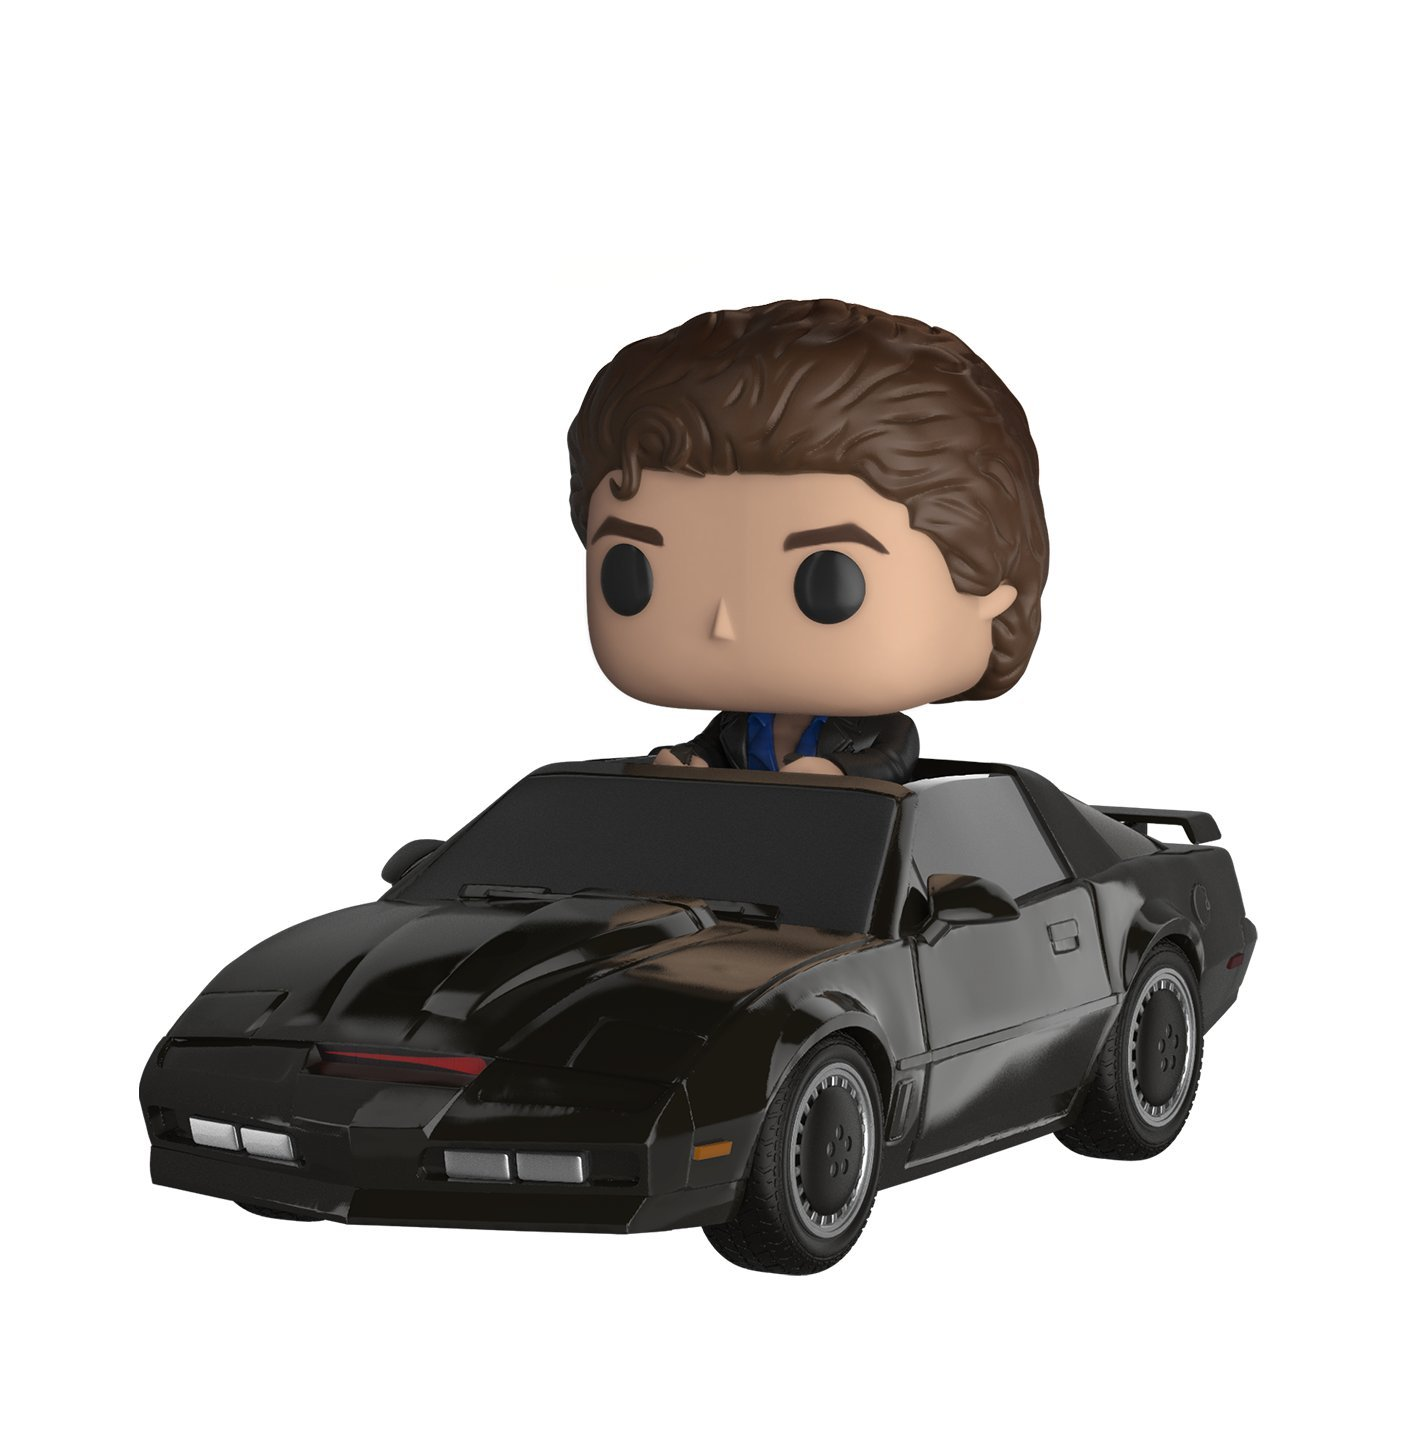 Funko Pop Ride: Knight Rider - Michael Knight with Kit Collectible Figure, Multicolor 32721